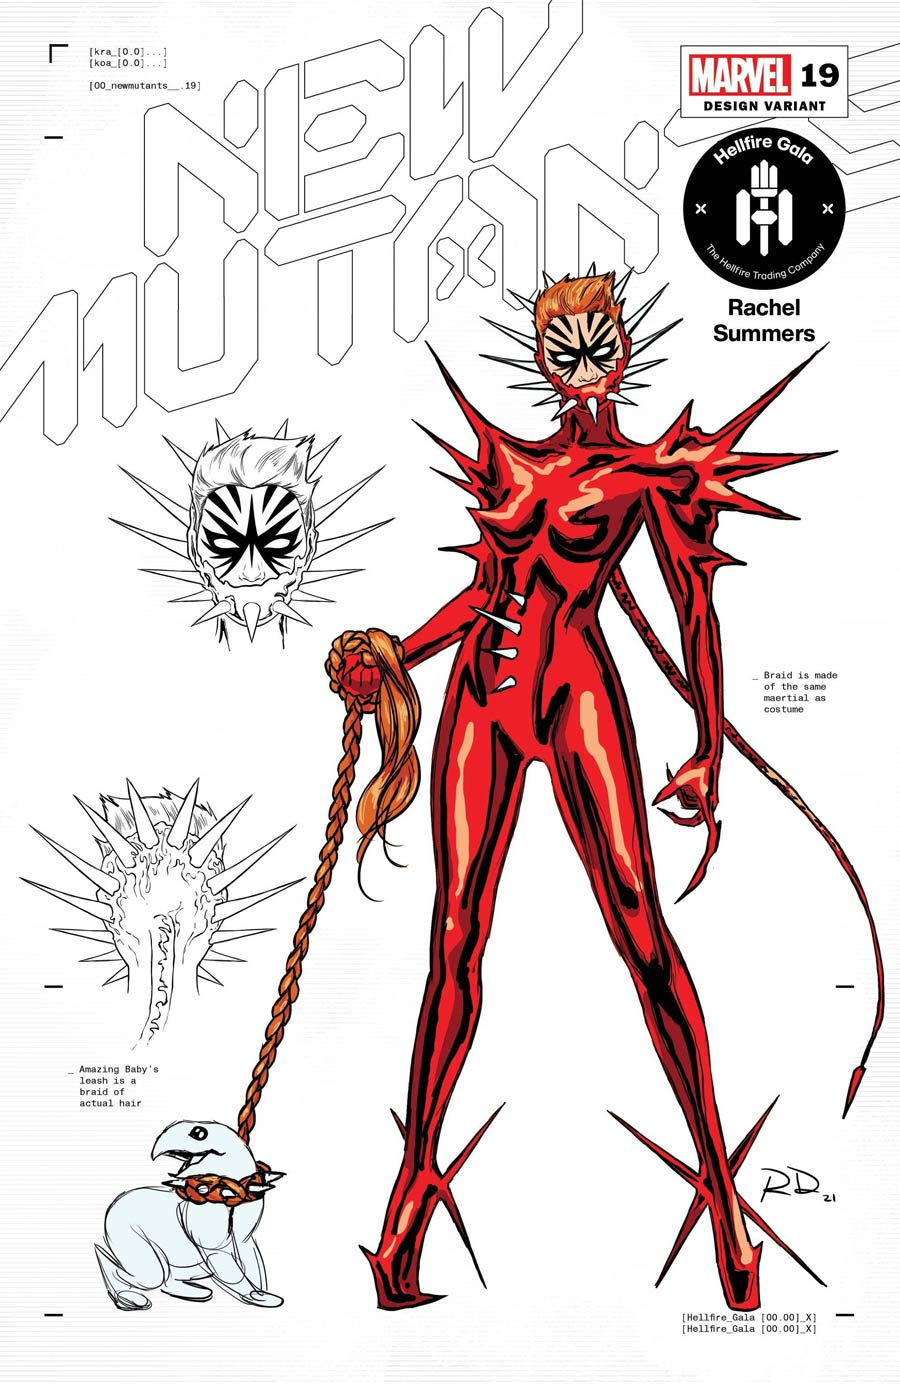 New Mutants Vol 4 #19 Cover D Incentive Russell Dauterman Rachel Summers Character Design Variant Cover (Hellfire Gala Tie-In)